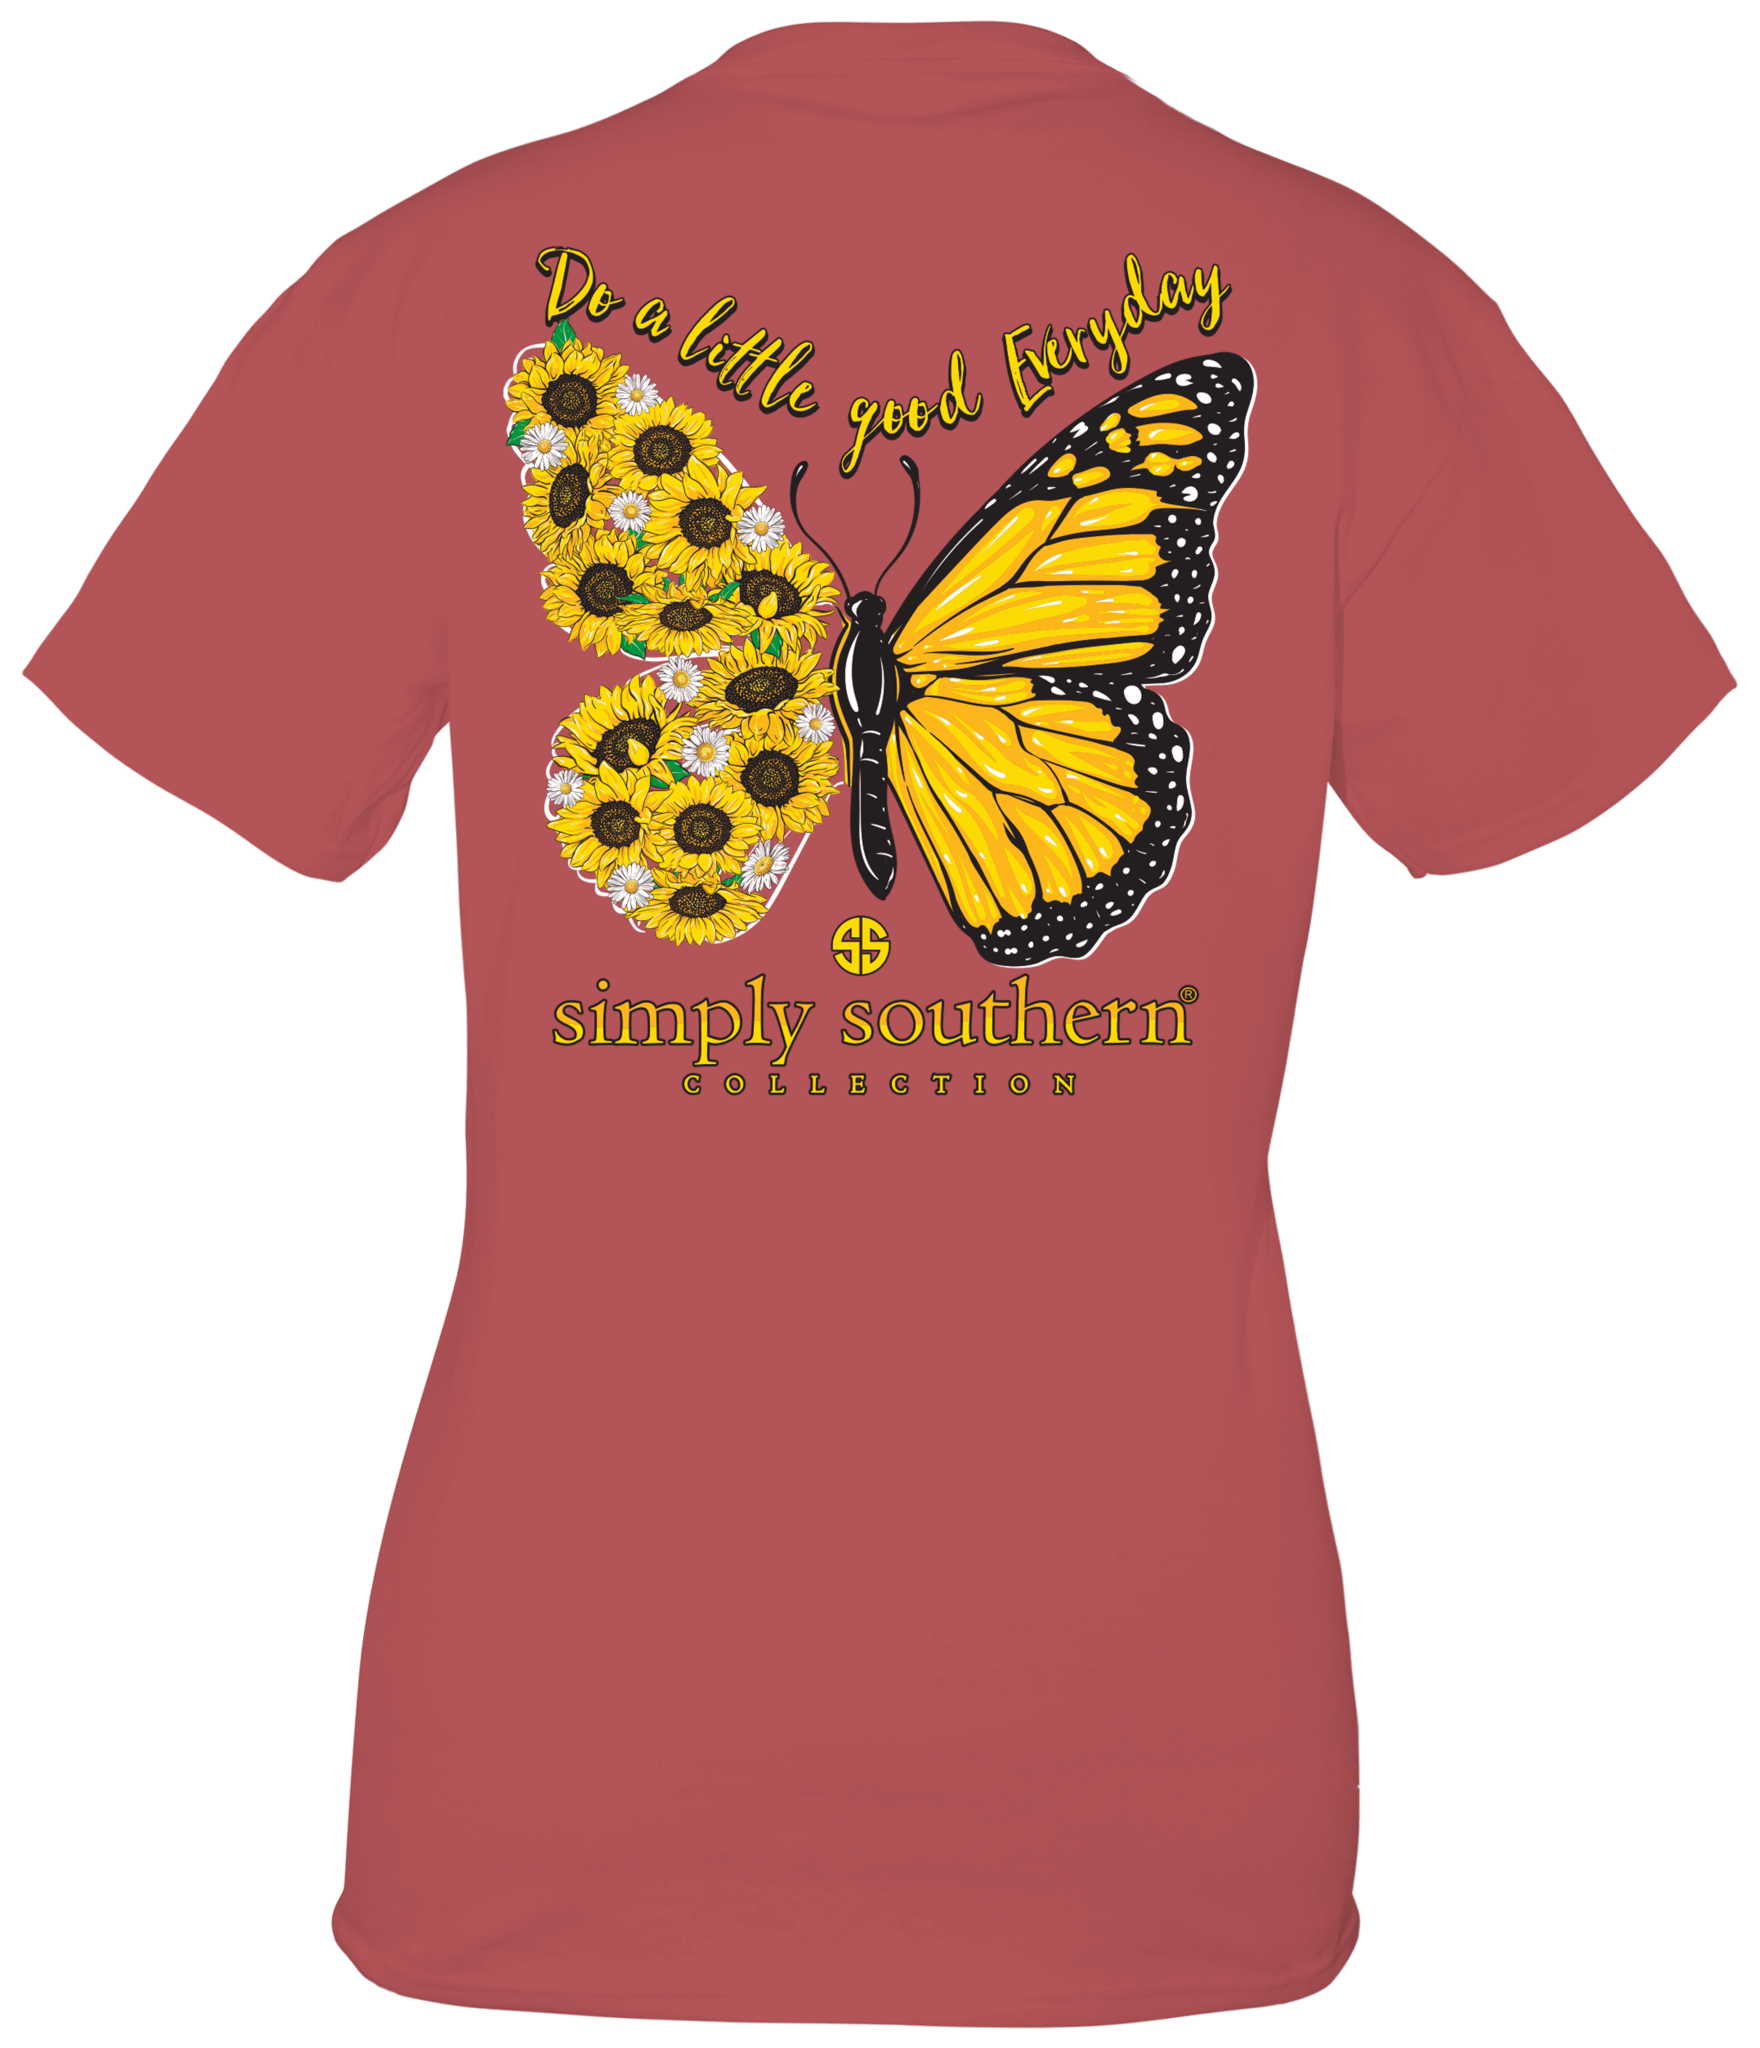 Simply Southern Collection Youth Good Short Sleeve T-Shirt